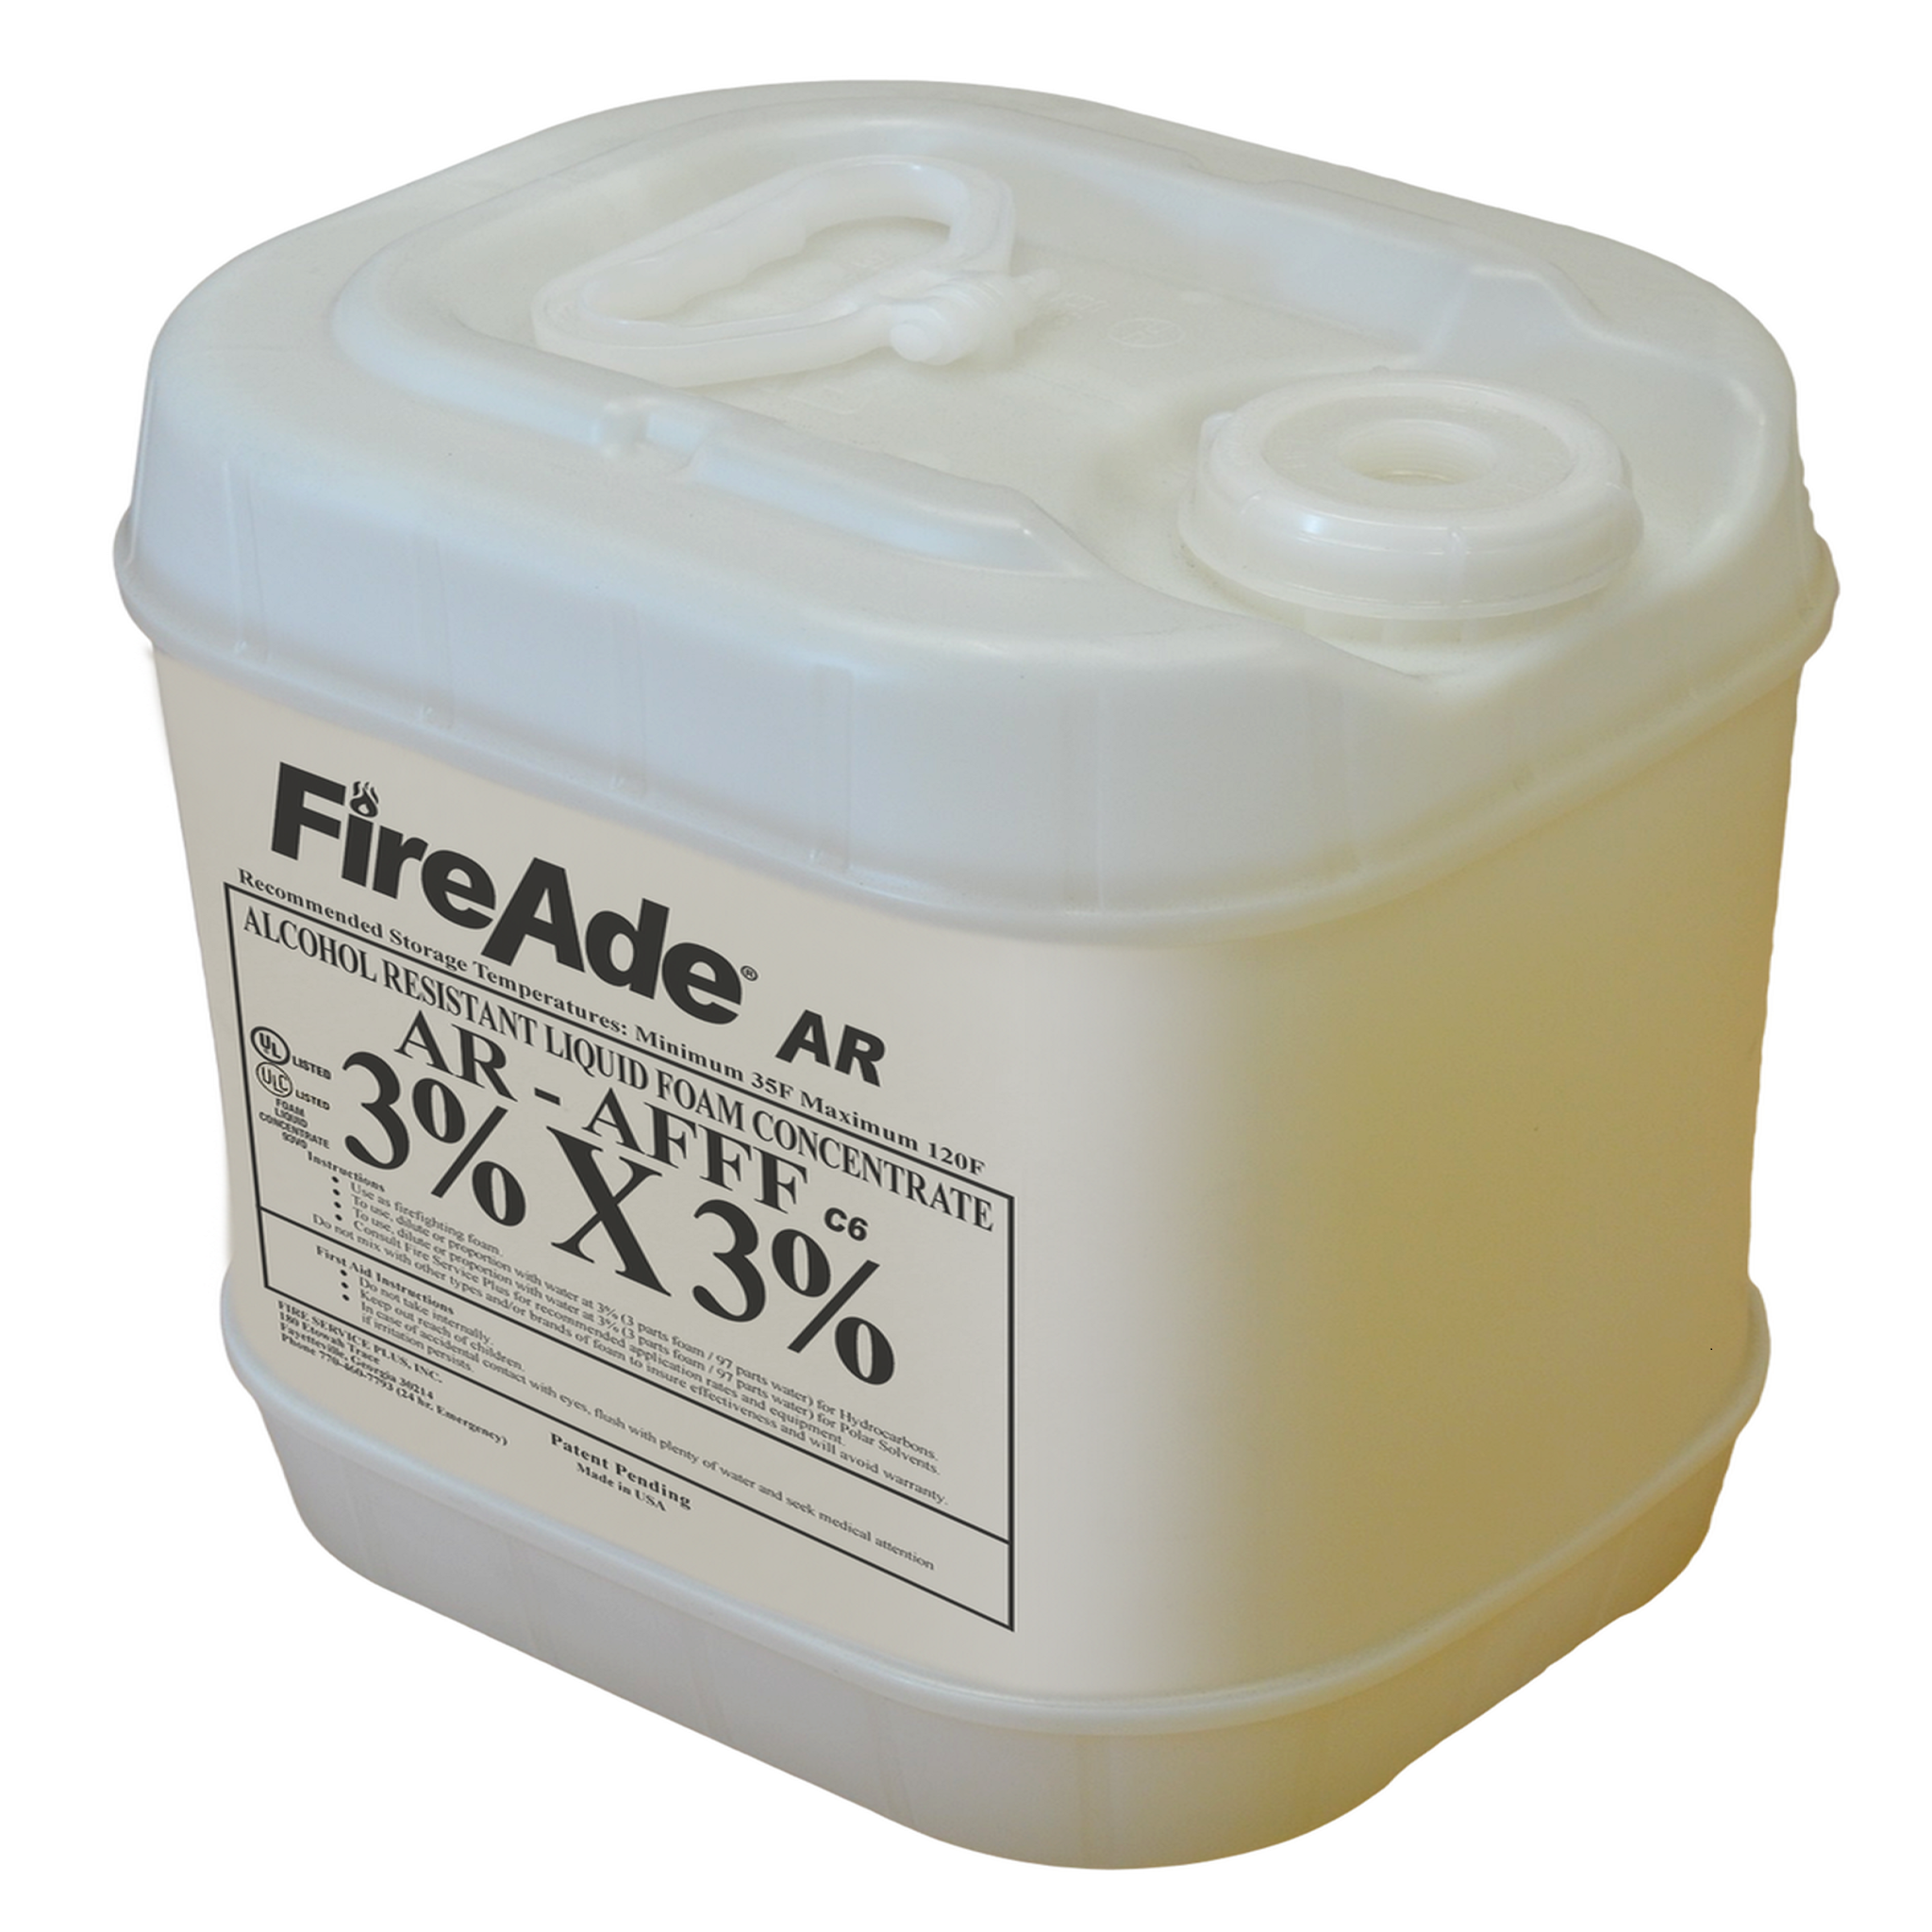 FireAde® FA2-A-005 Class A Foam Concentrate, Liquid, 50 gal Pail, Clear Light Red